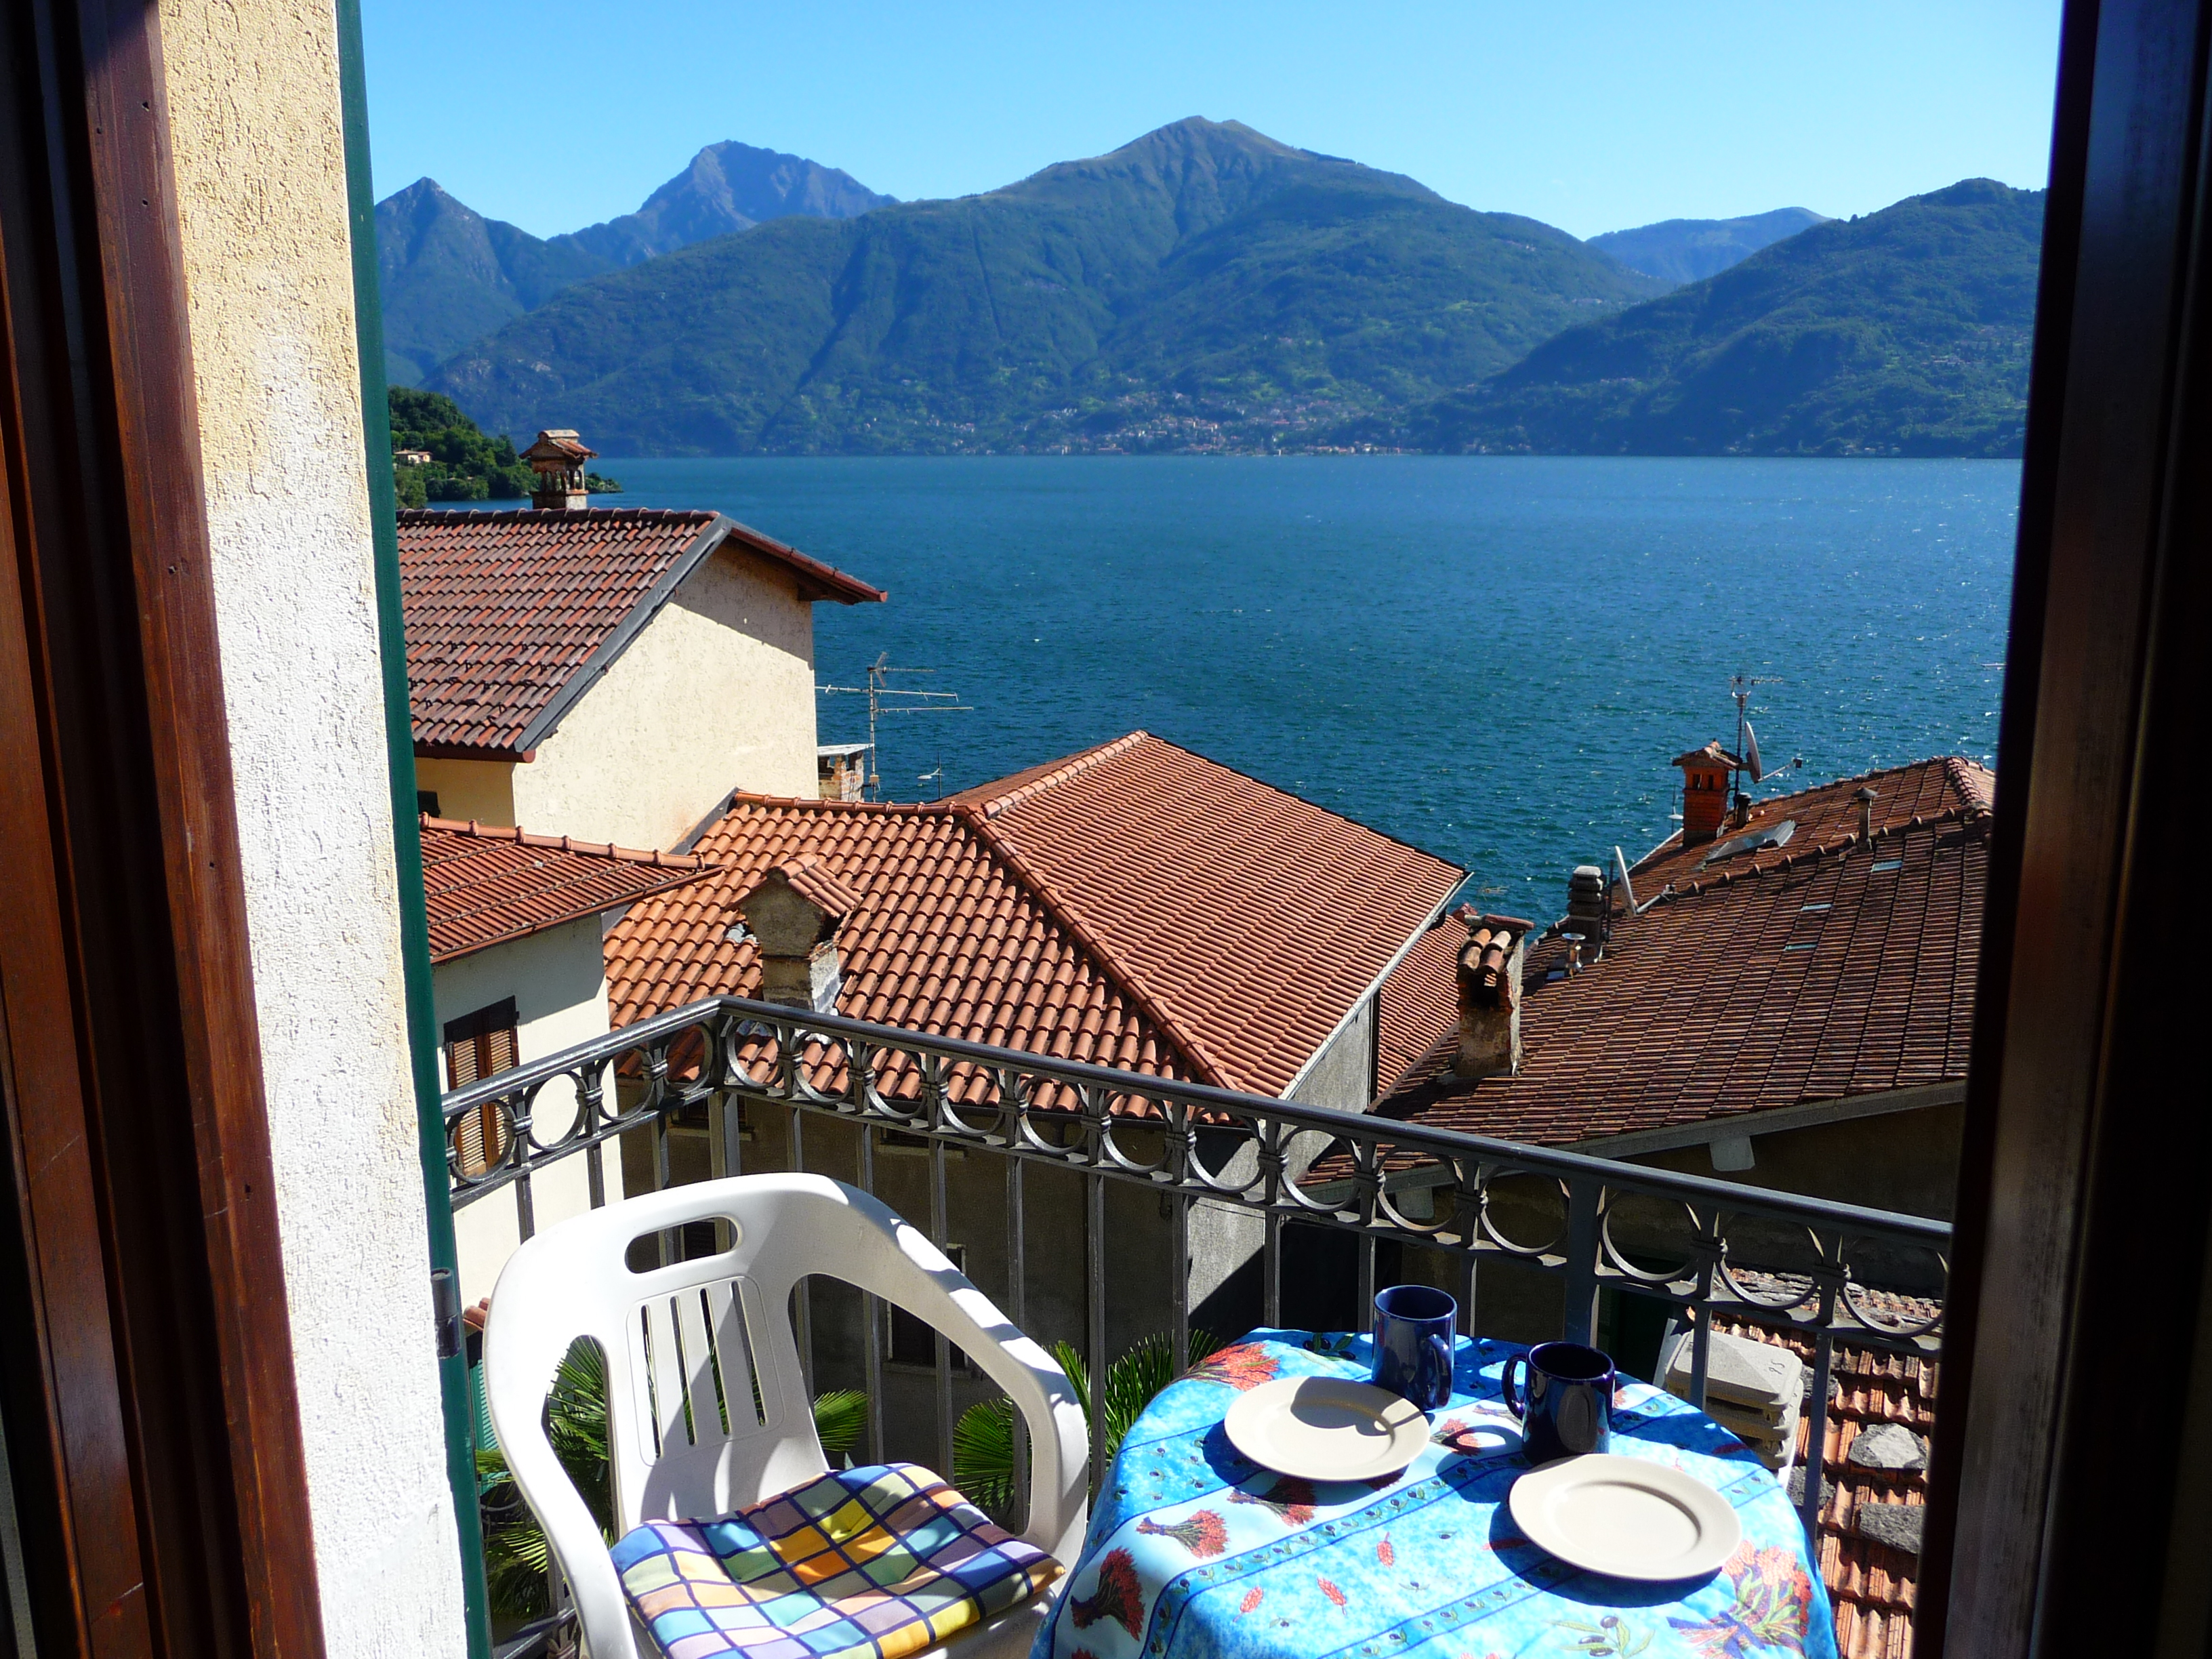 Apartments for rent in lake Como , Menaggio,Italy.Vacation rentals holiday accommodation from private owner,flats to let ,holidays in Menaggio lake Como,rental apartment,house rentals